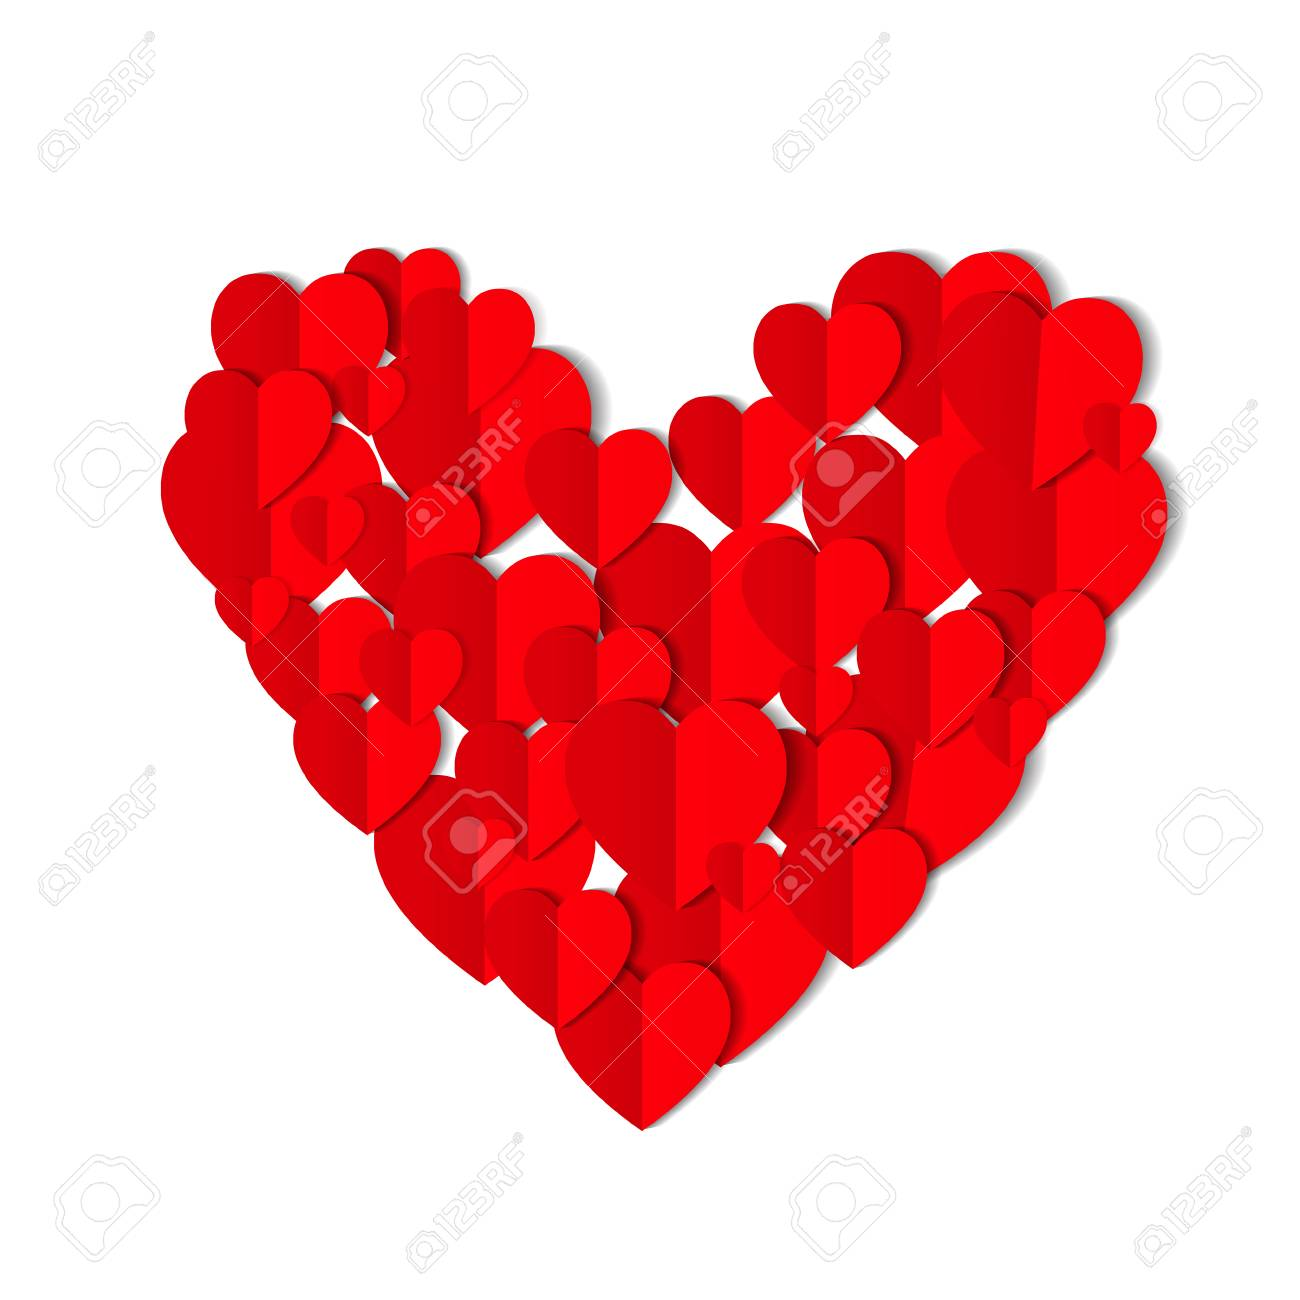 Red origami paper hearts isolated on white background. Valentines day concept. Love, feelings, tenderness design. Vector illustration - 126390611